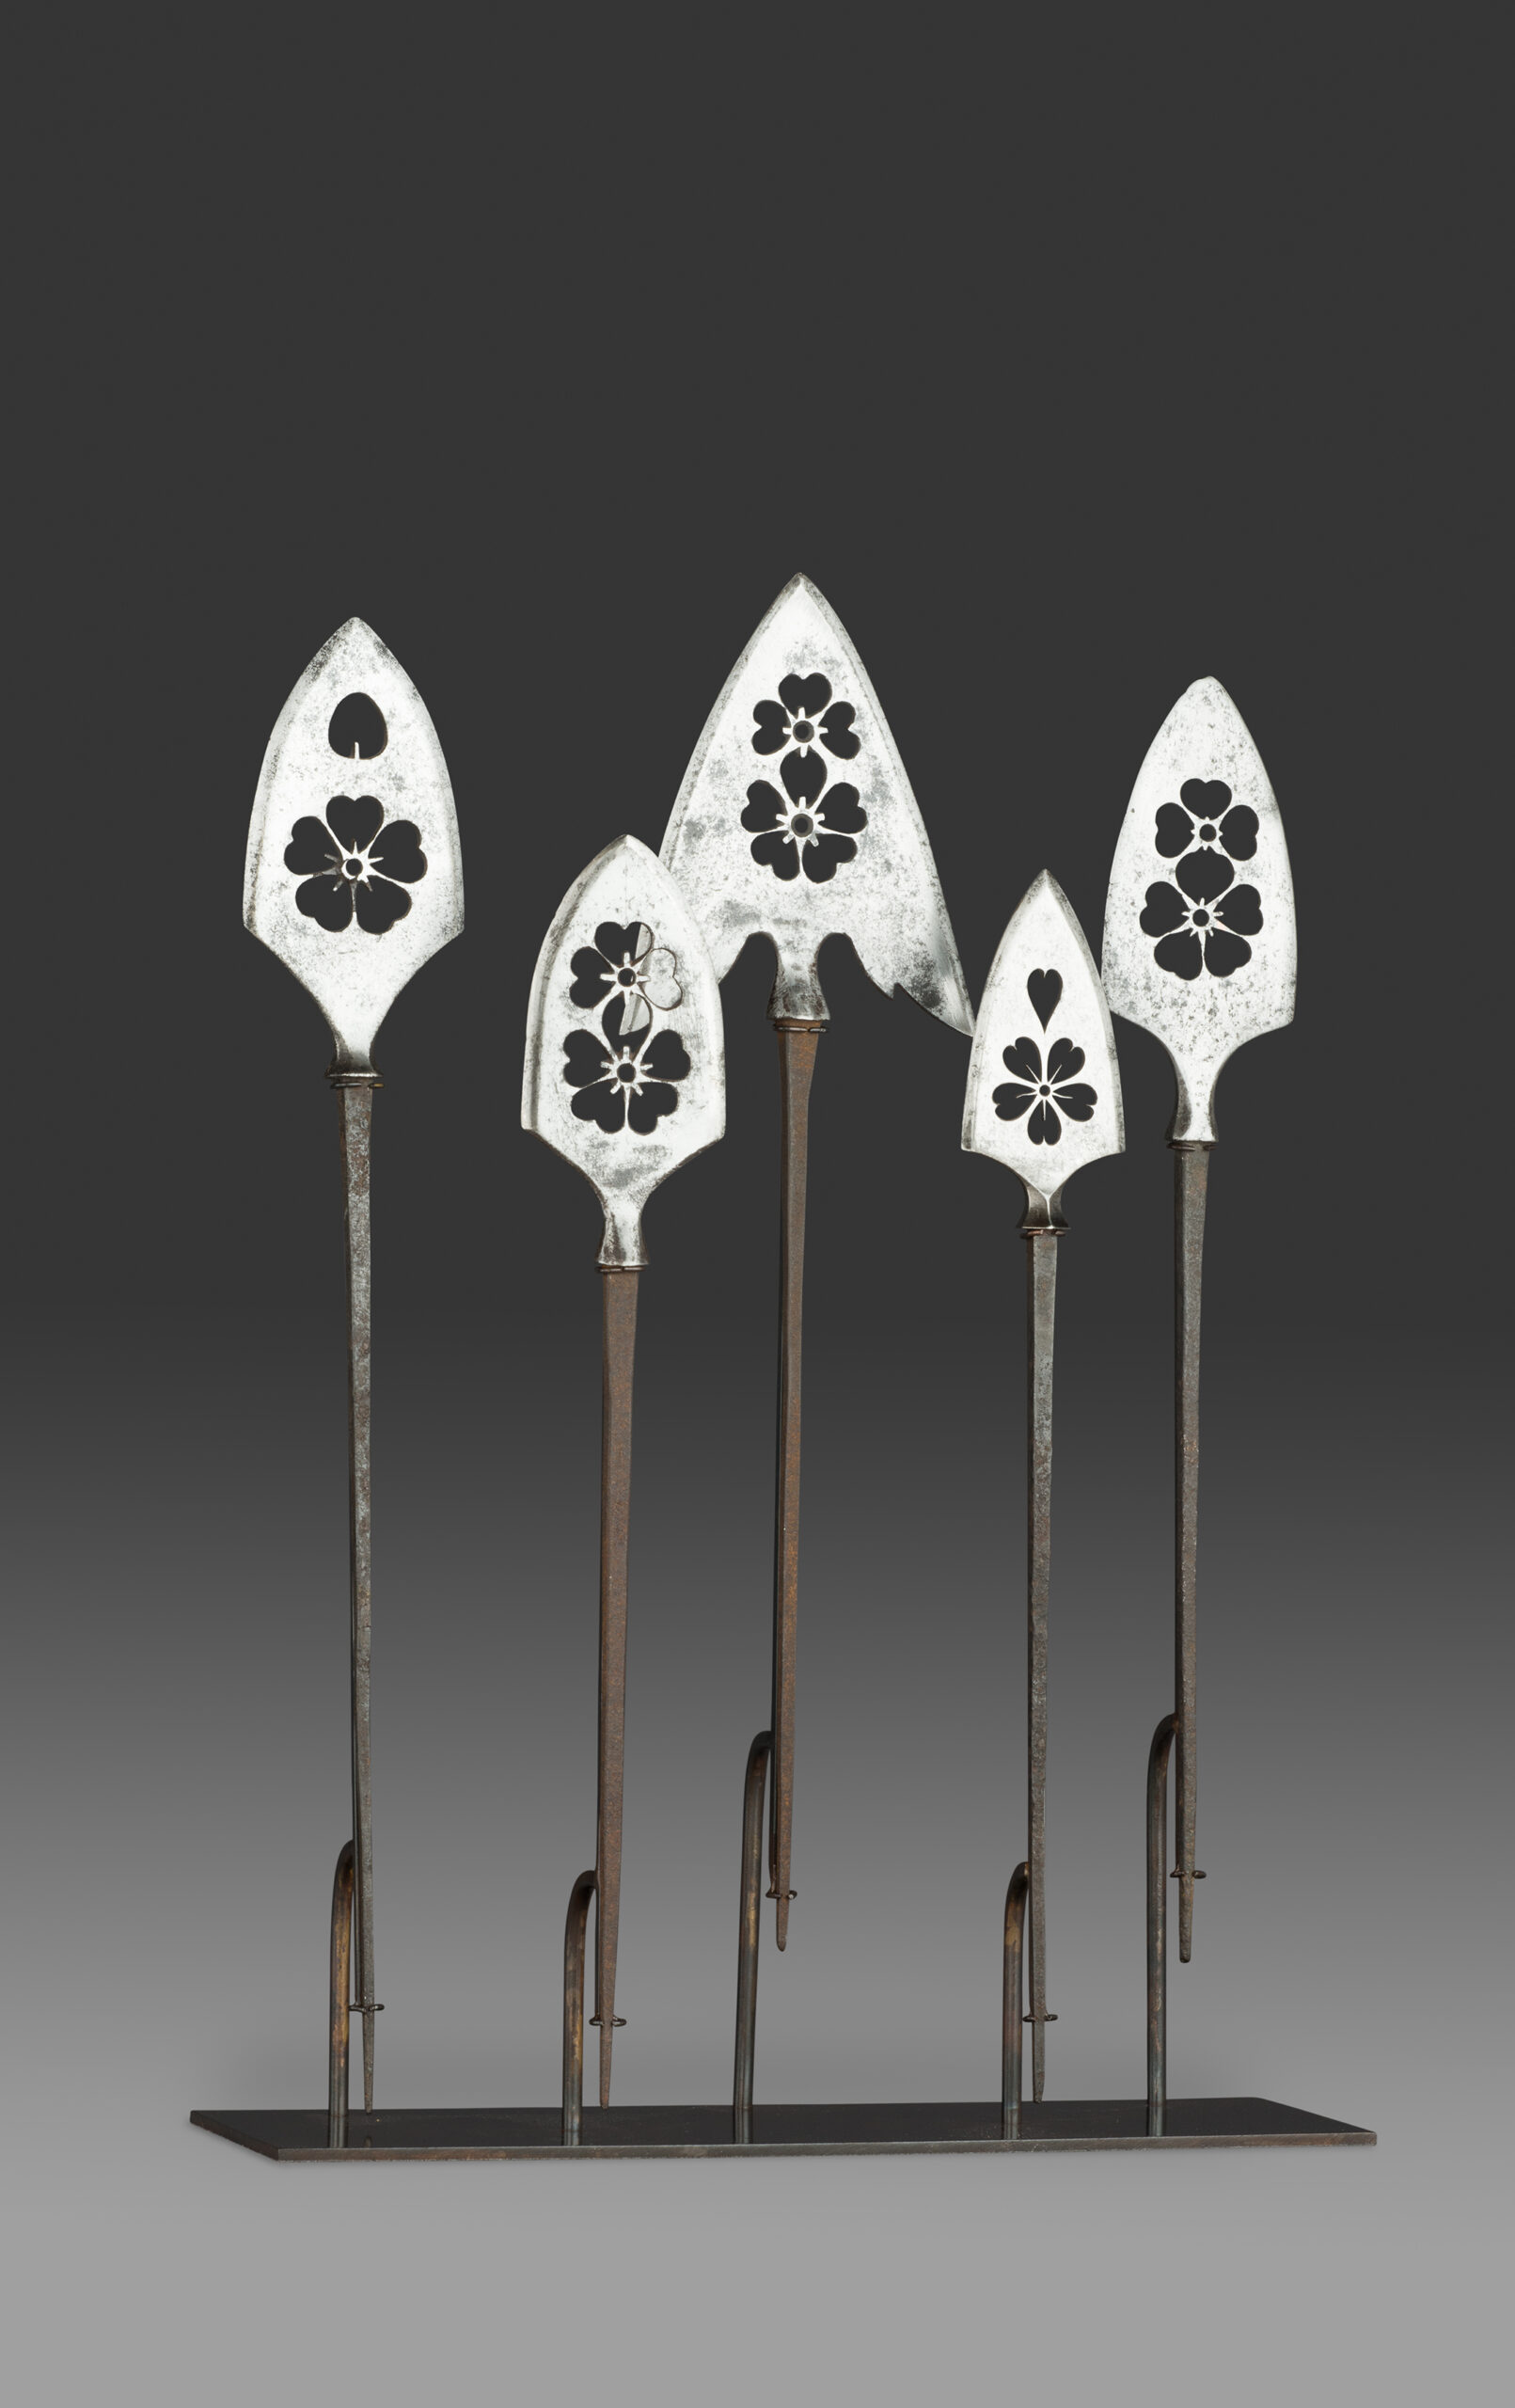 A Collection of Arrowheads,Yanone, Edo Period, 17th -19th century Japan. Steel Height 24 cm / 9.5 in